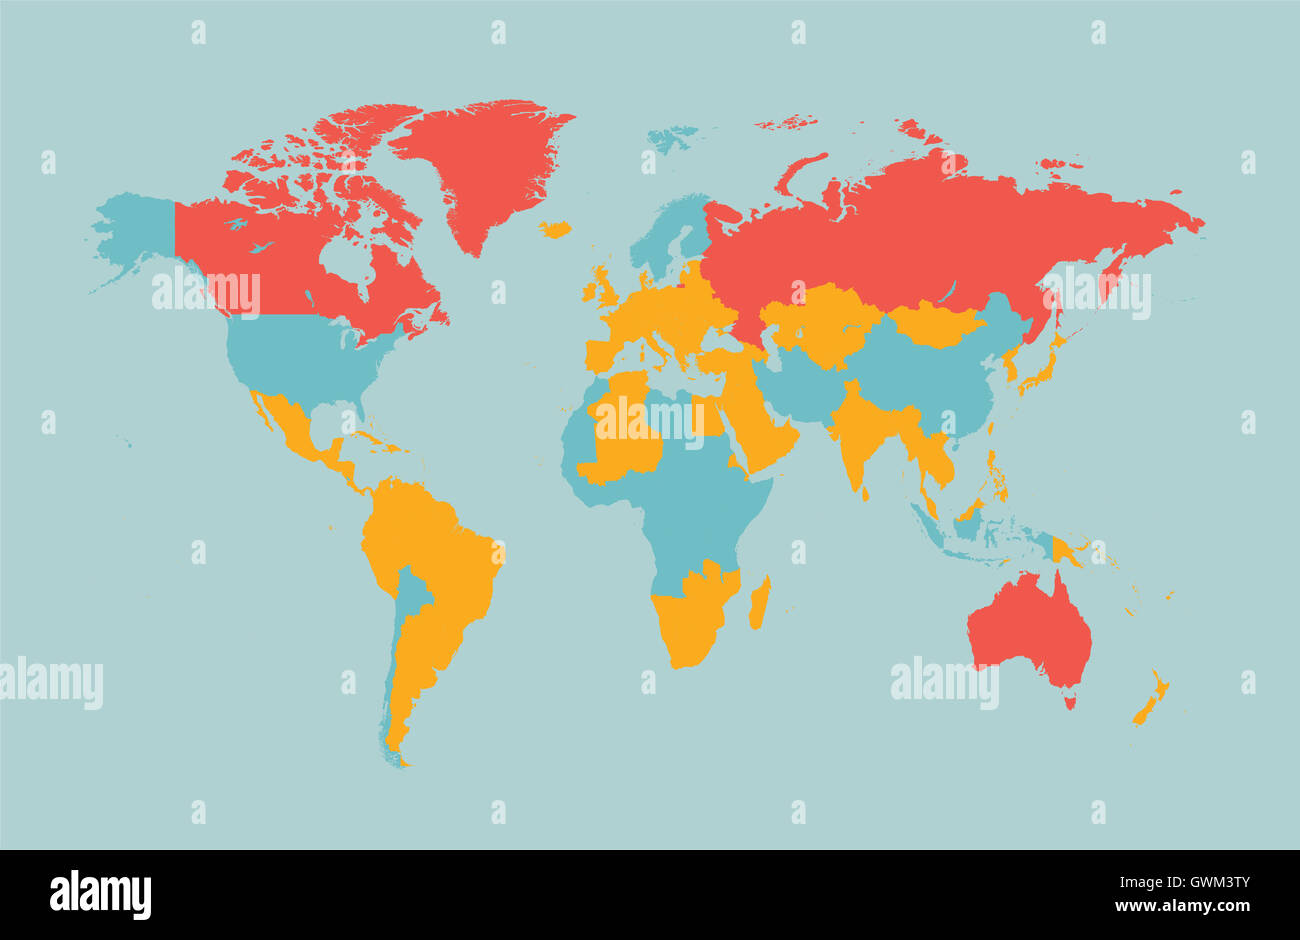 world map vector flat design with countries - Stock Image